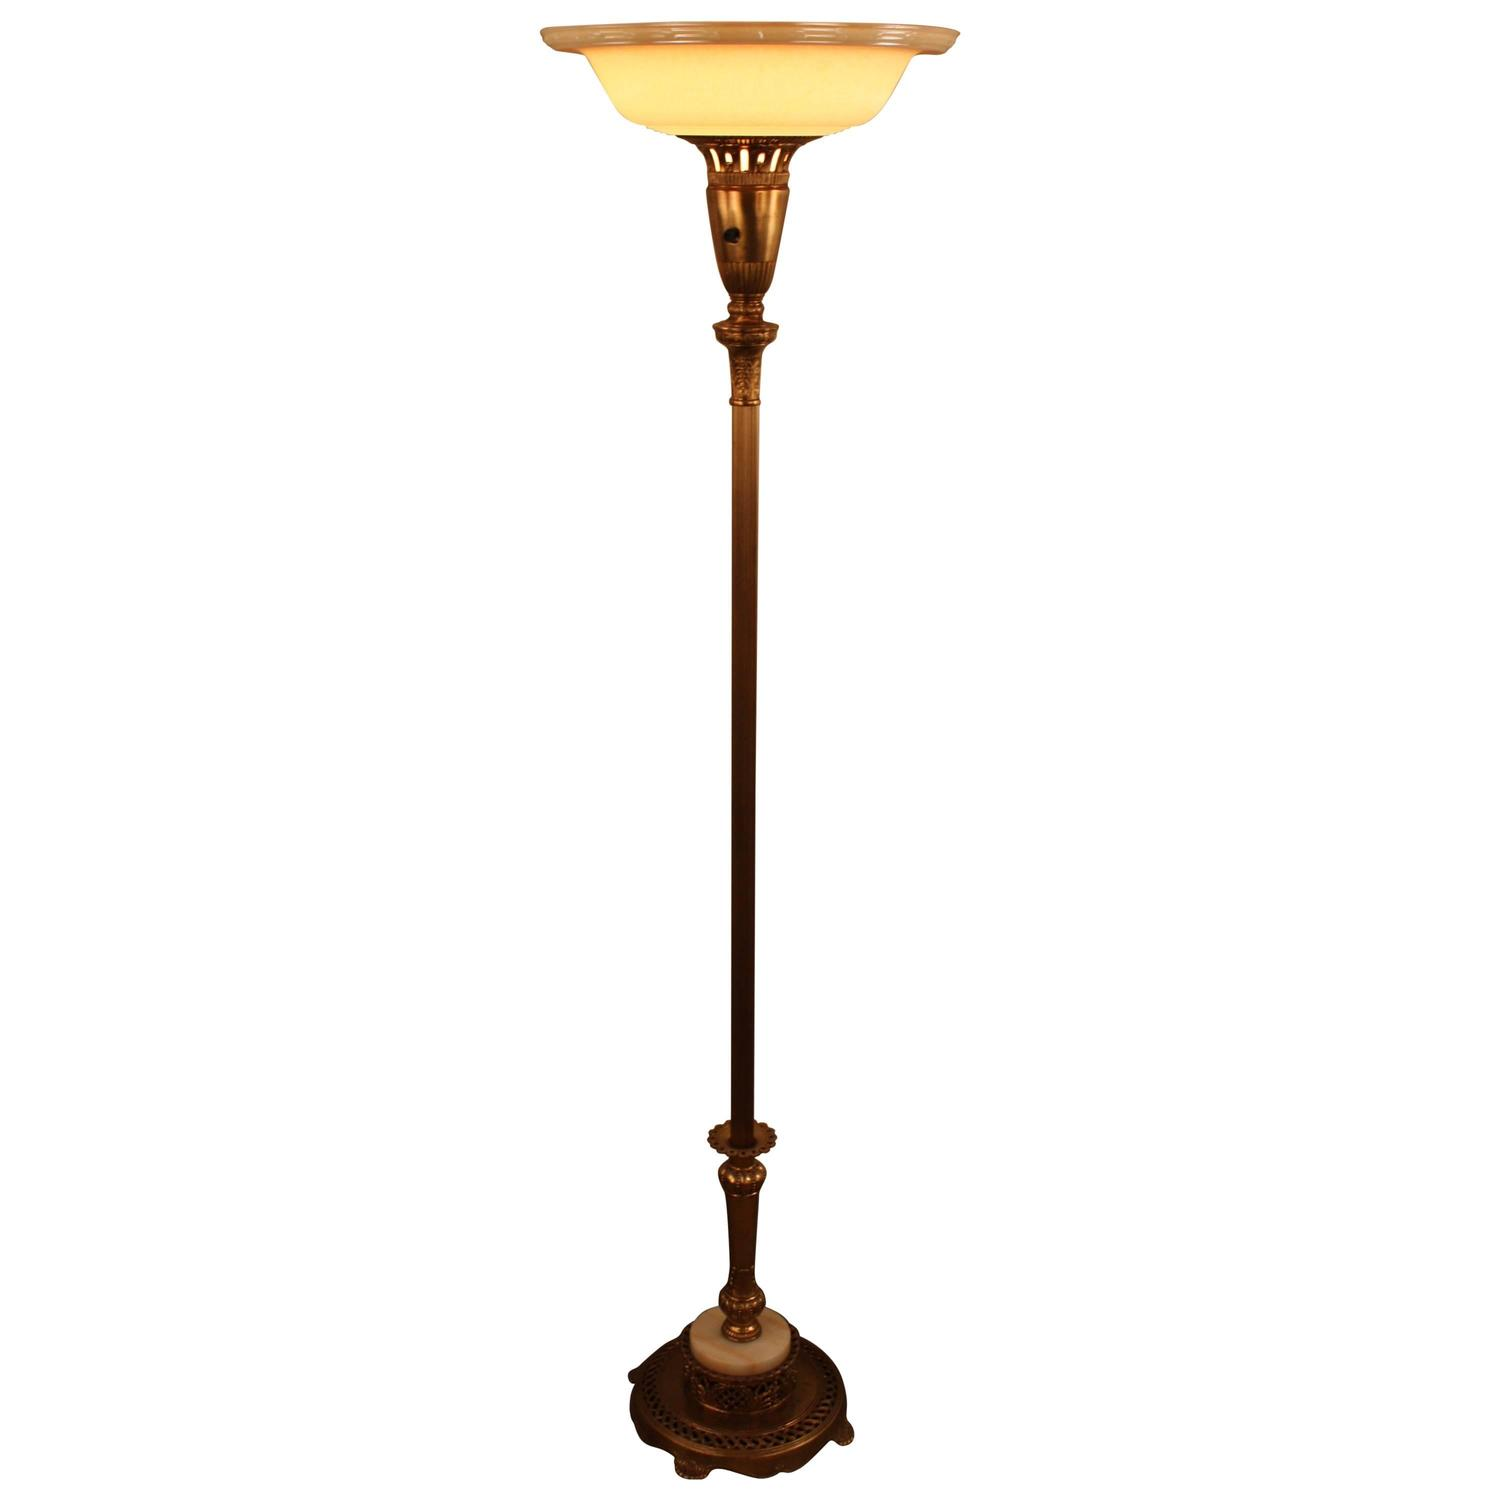 American torchiere floor lamp at 1stdibs for Floor lamp vs torchiere